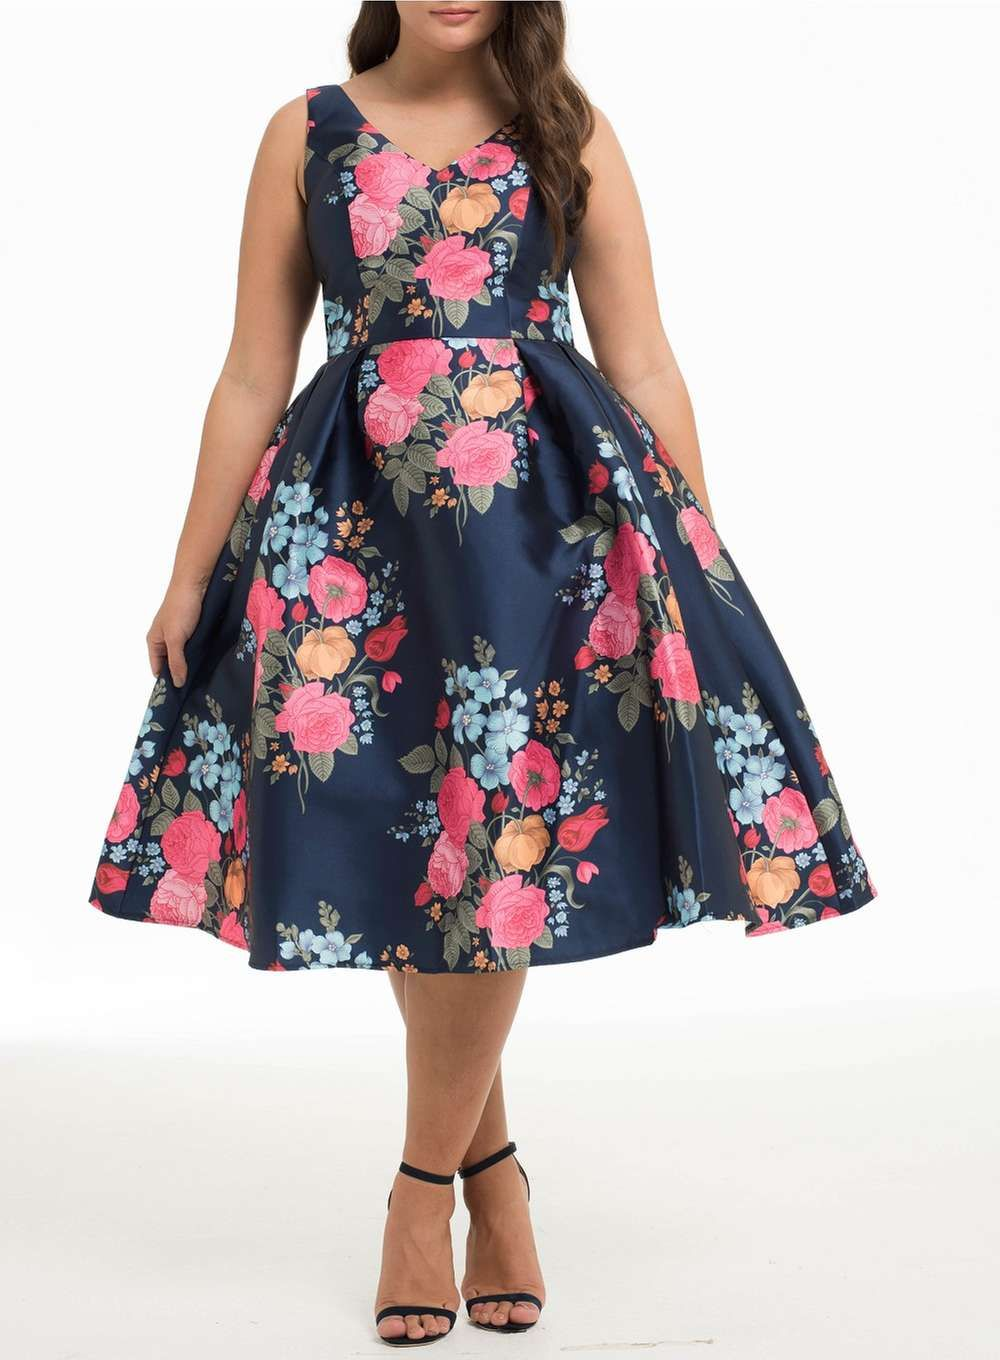 7d673cca6bb0 Chi Chi London Curve Navy Floral Dress